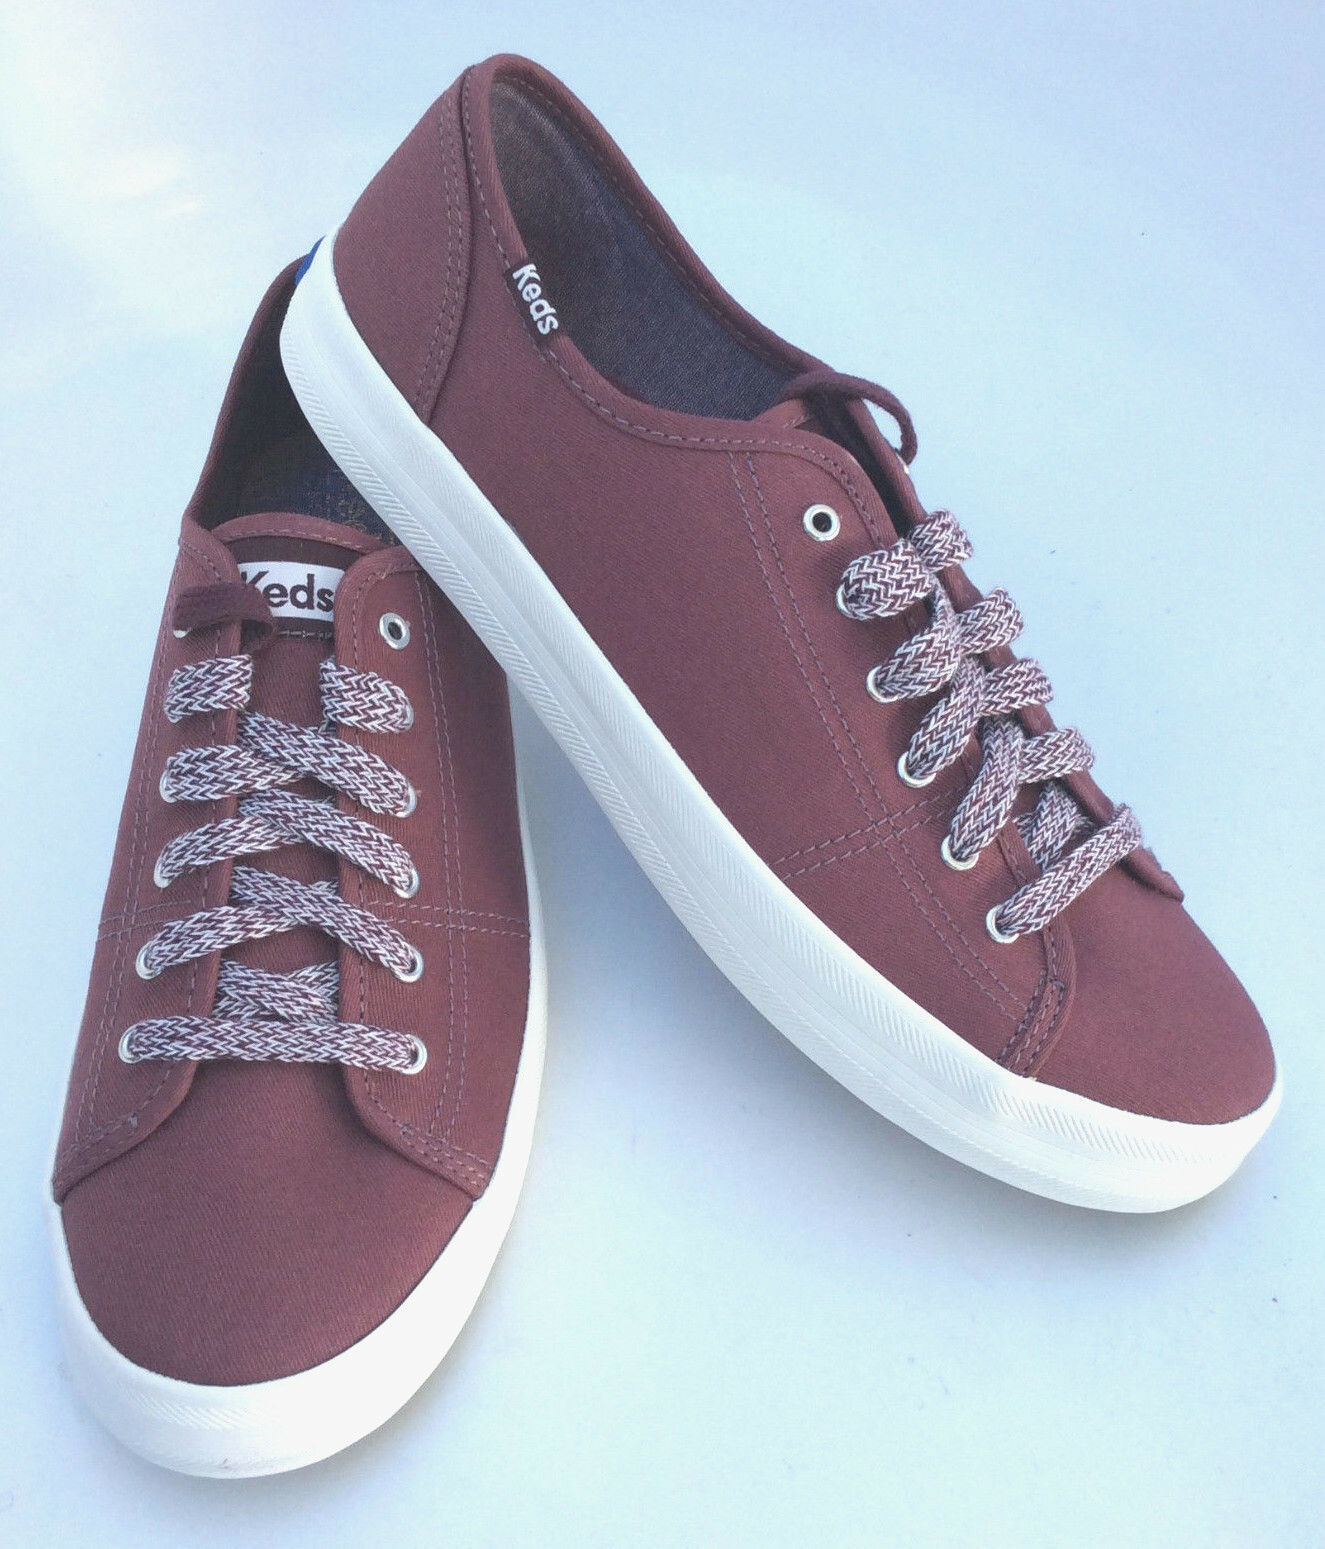 Primary image for Keds WF60470 Women's Kickstart Solid Sport Burgundy Size 5.5